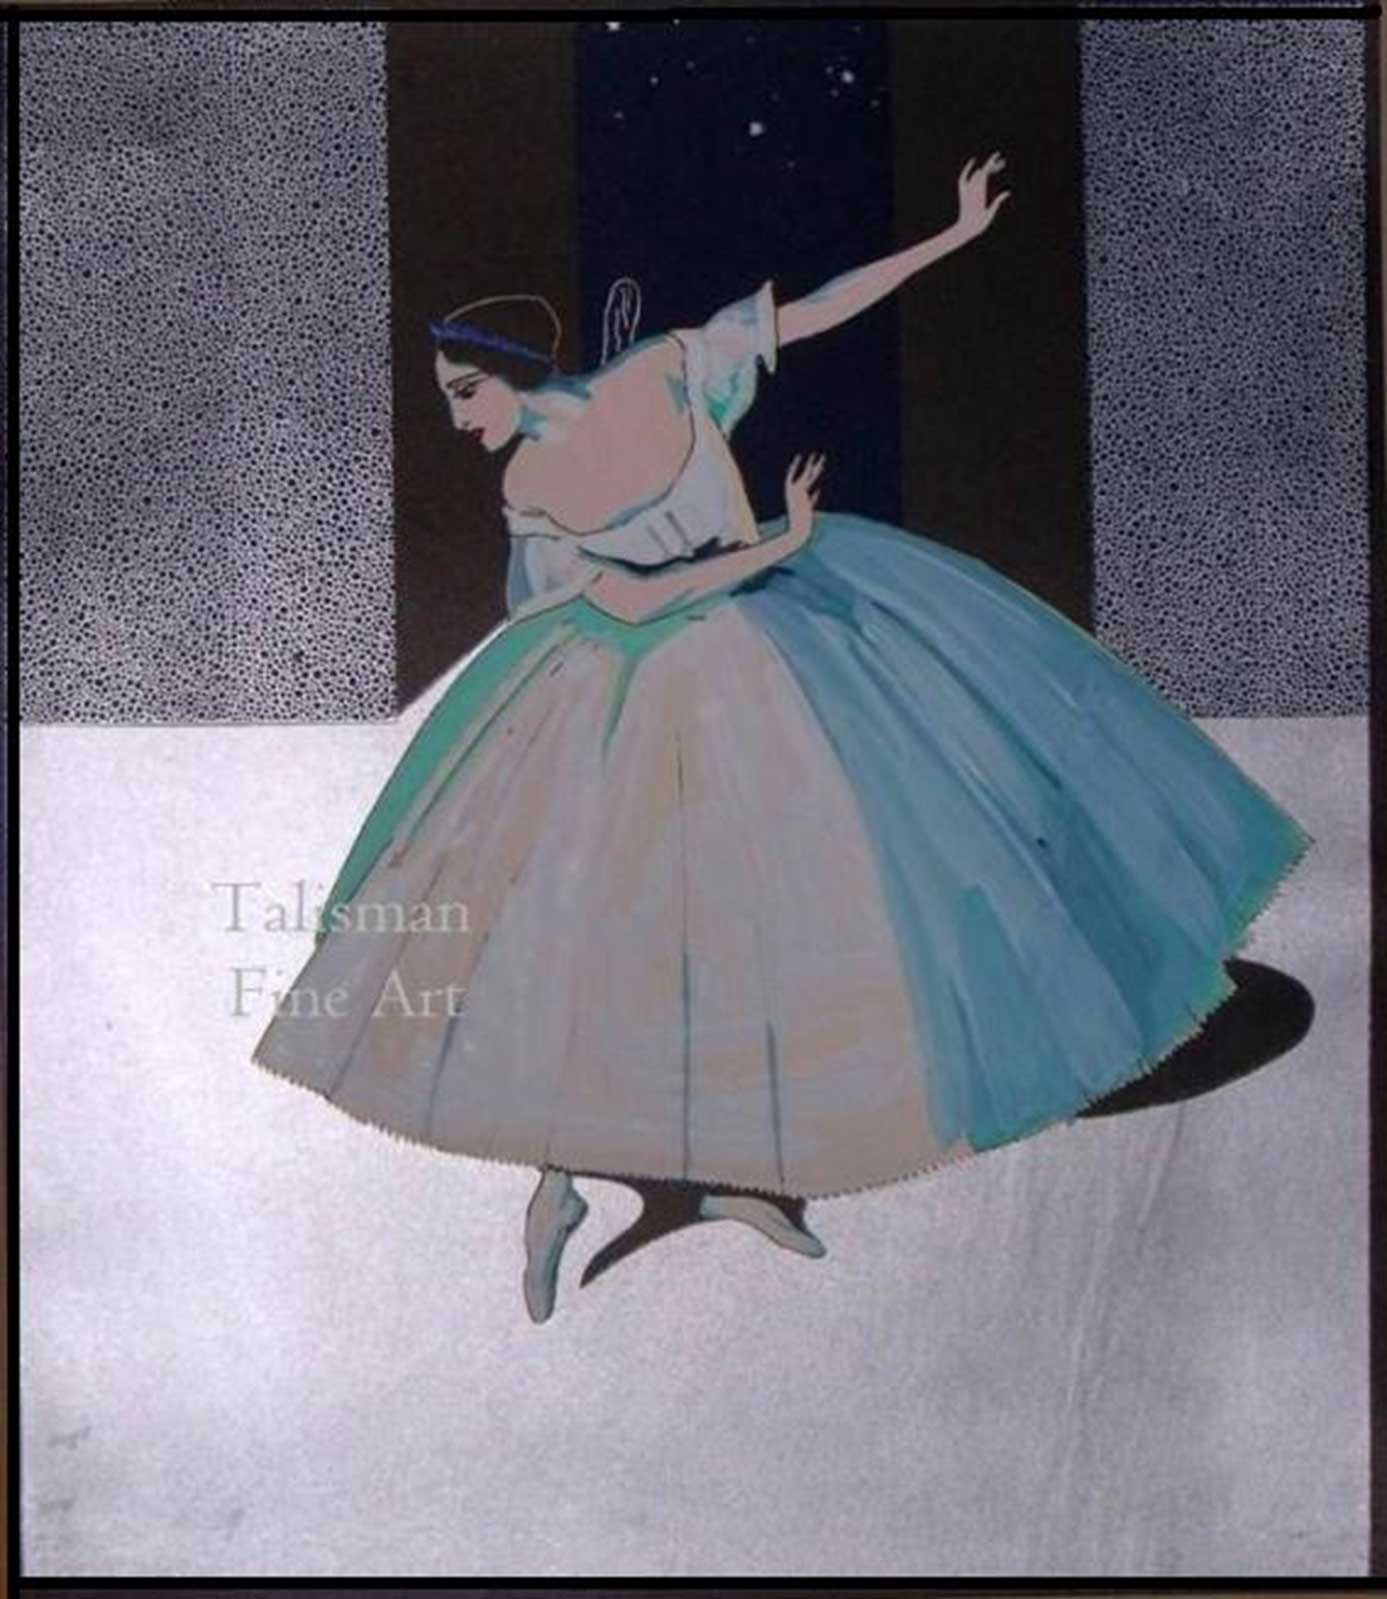 Talusman Fine Art Vera Willoughby - Lubov Tchernicheva dancing Les Sylphides (We have more works by Willoughby) Sold